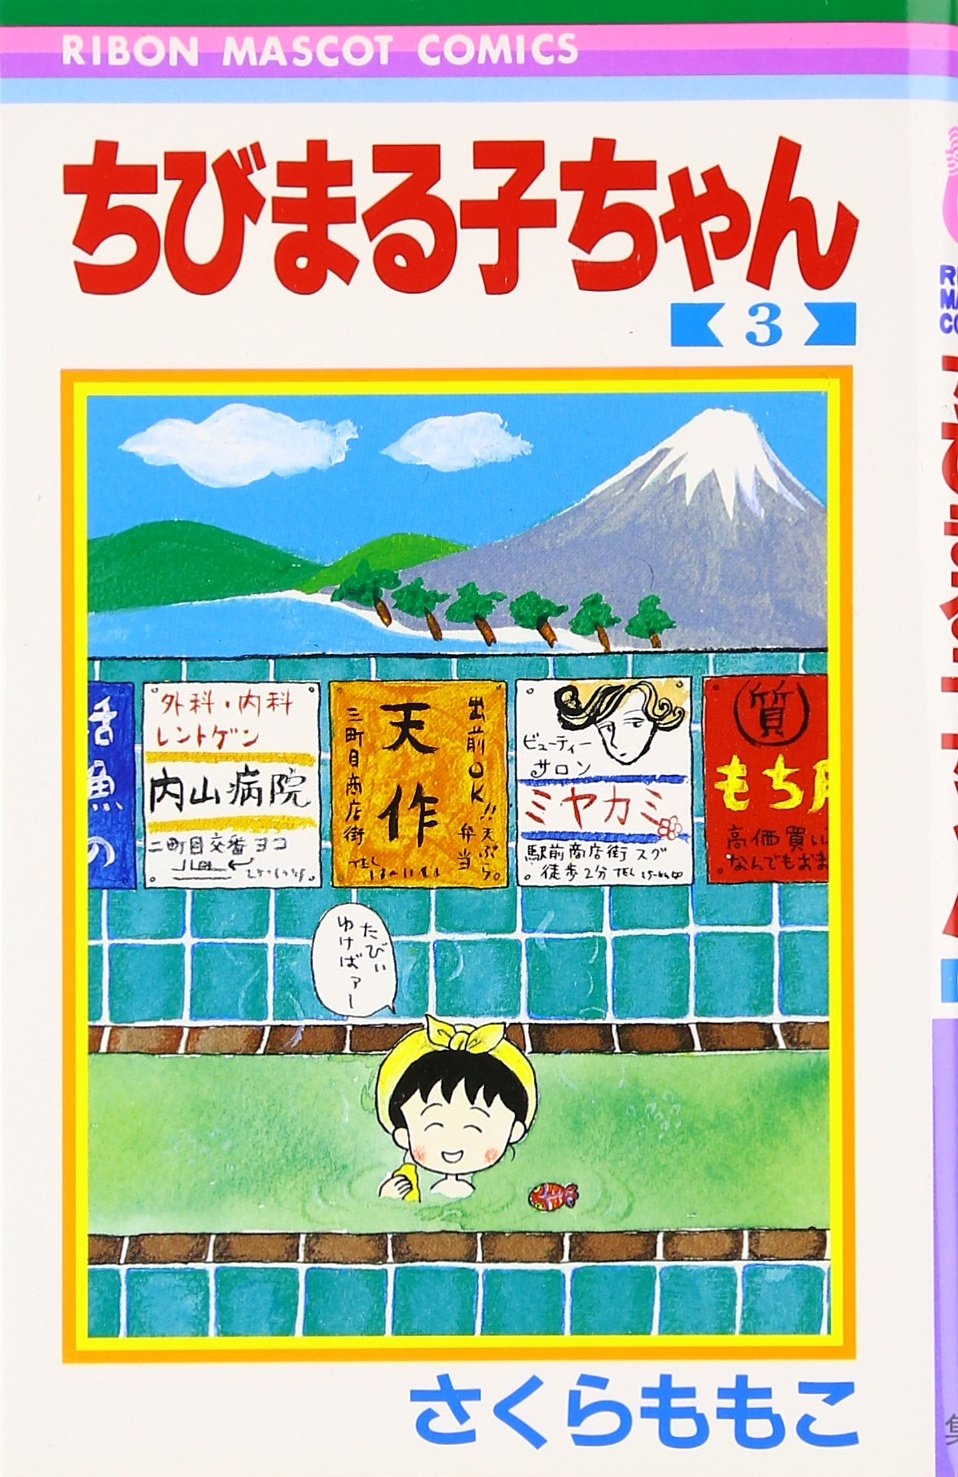 Chibi Maruko-chan Vol. 3 (Manga) [in Japanese Language] by unknown